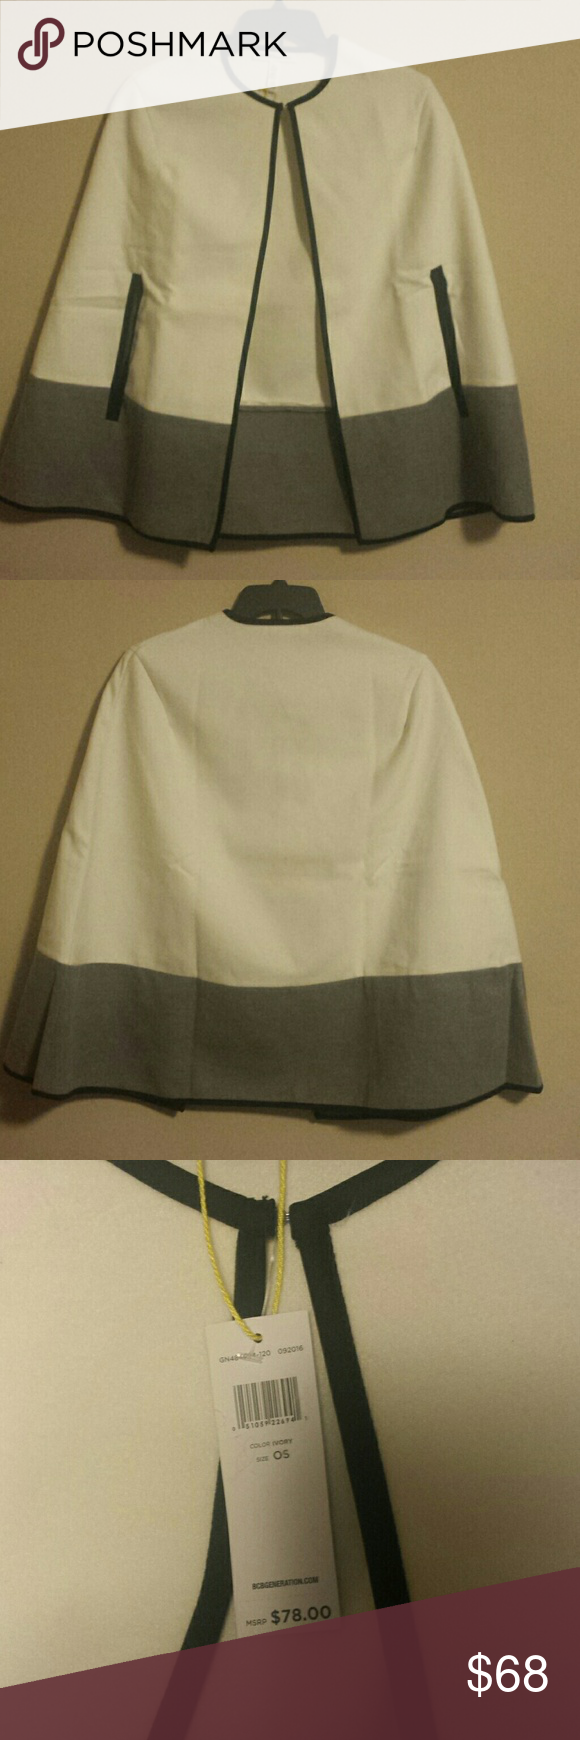 Cape crusader(accepting offers) Stylish color blocked cape.. Tags still attached BCBGeneration Jackets & Coats Capes